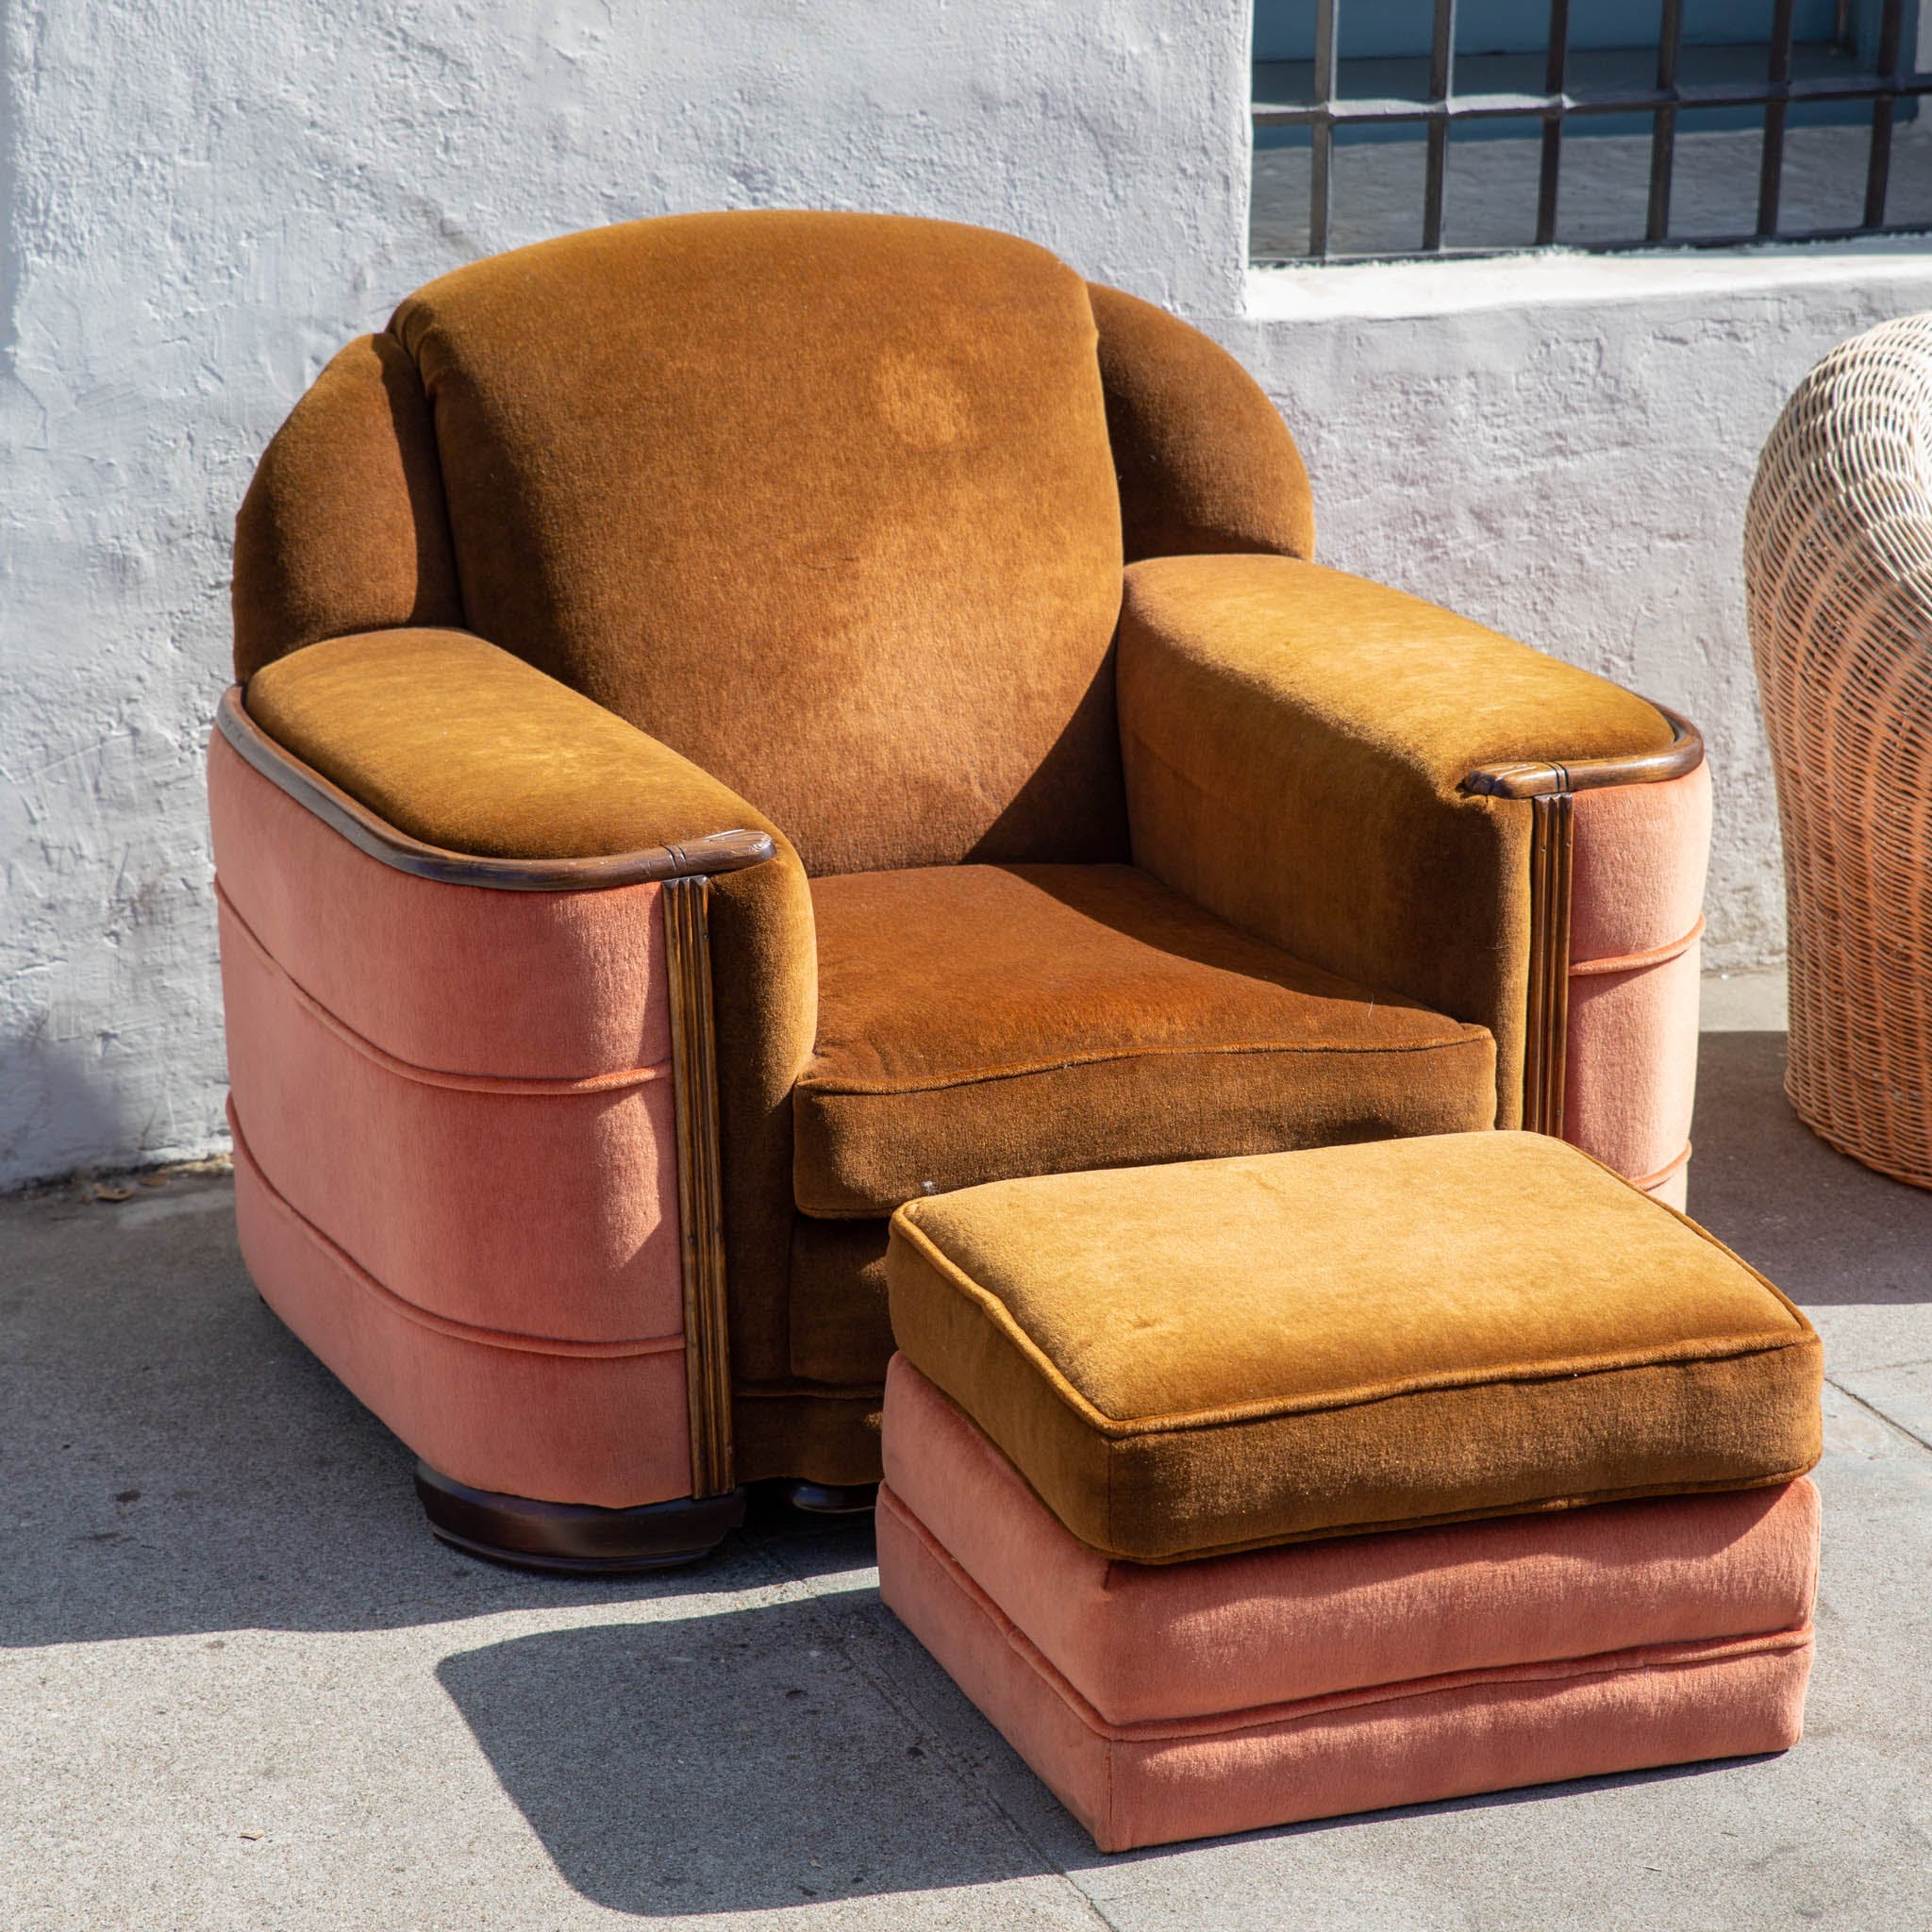 Ottoman Upholstery 1920s Art Deco Club Chair And Ottoman With Original Upholstery